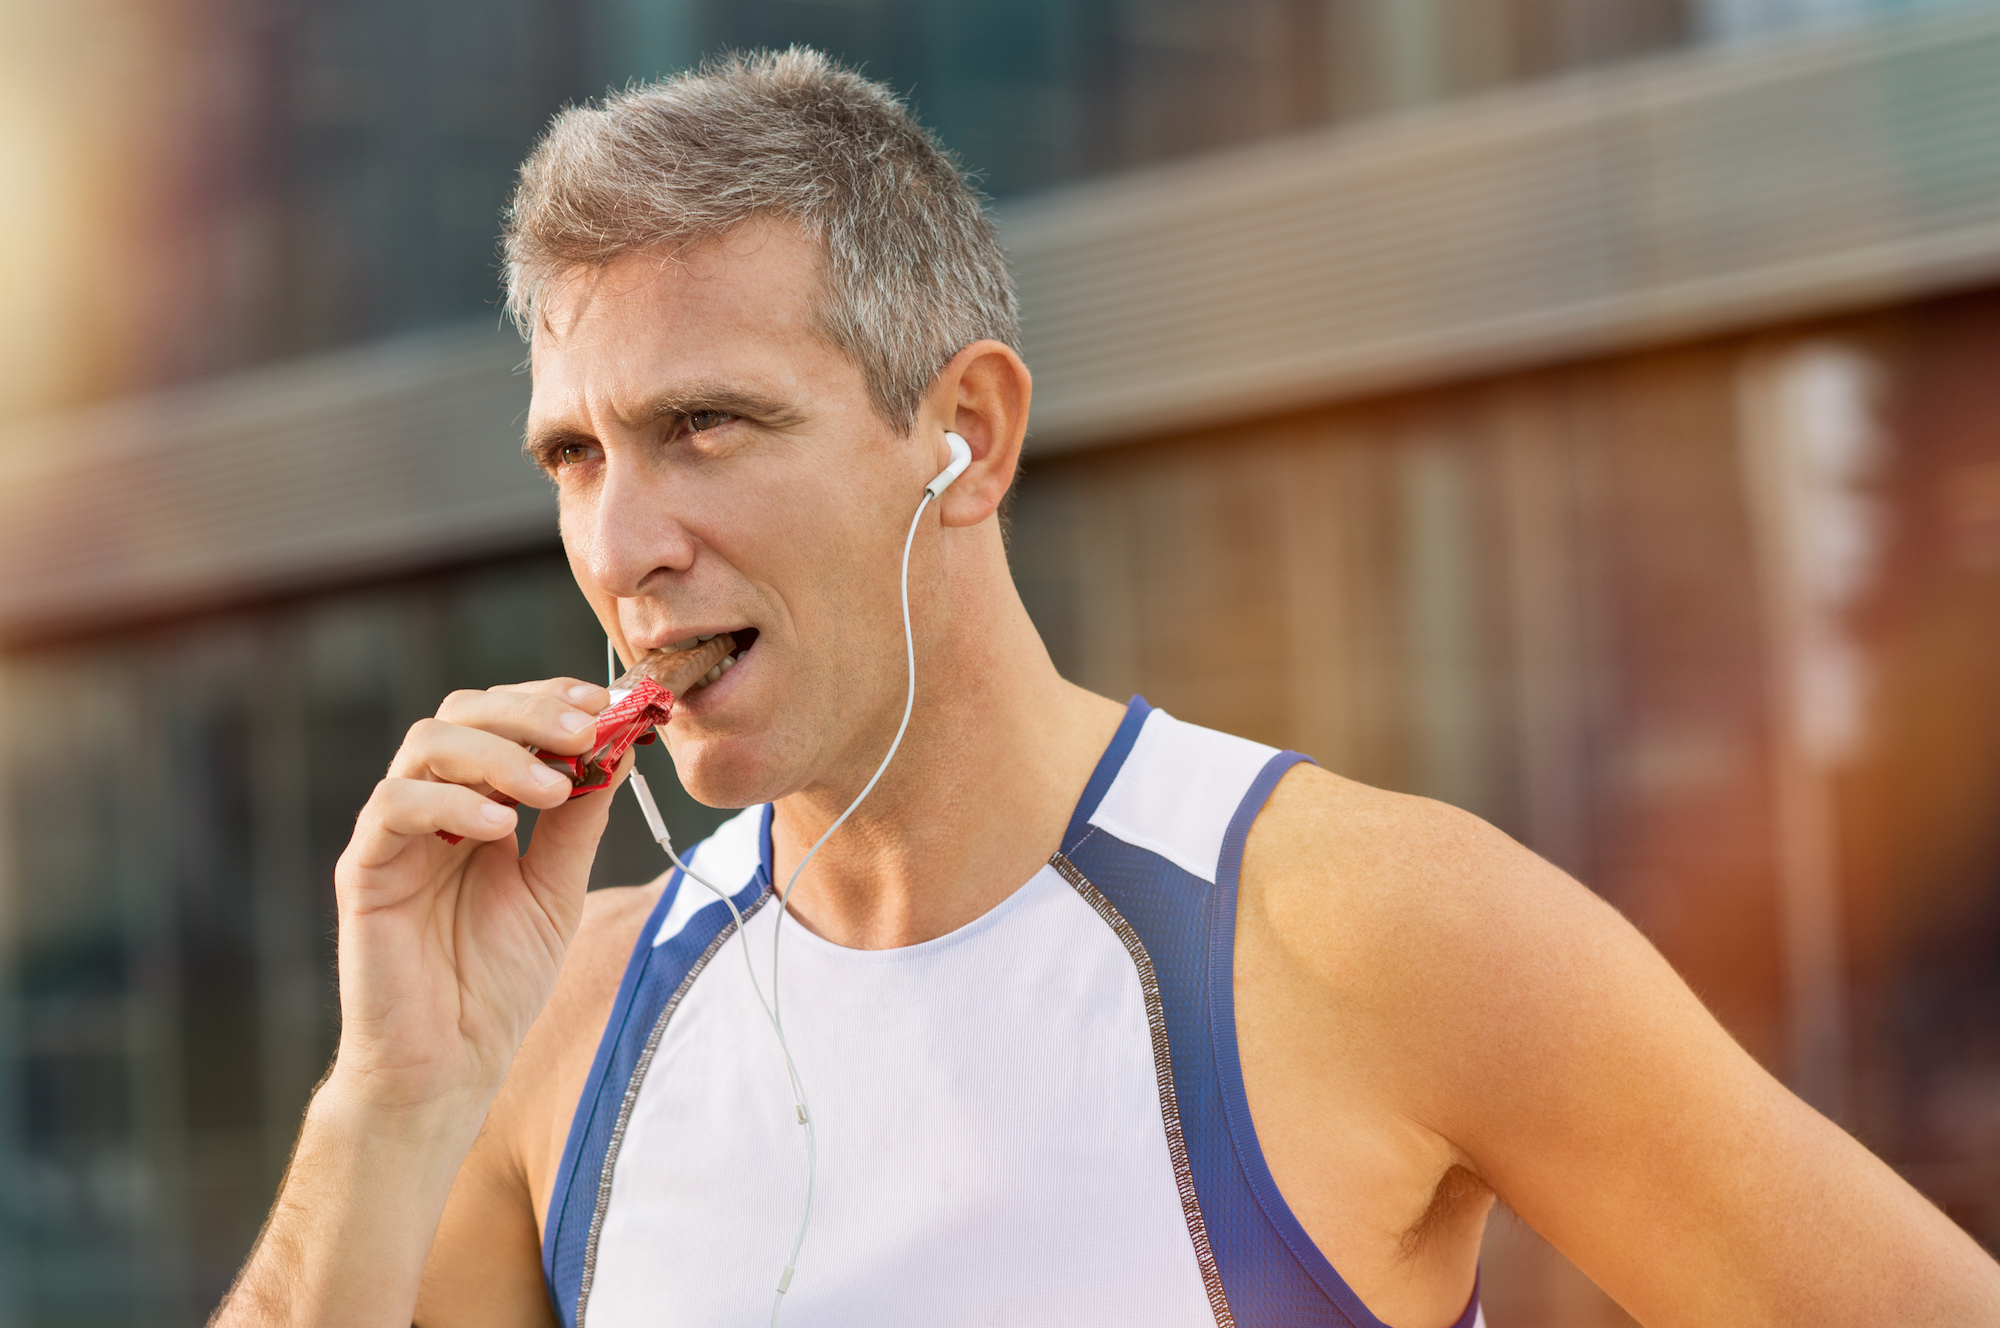 Older, fit man in a white shirt eating chocolate bar after a workout